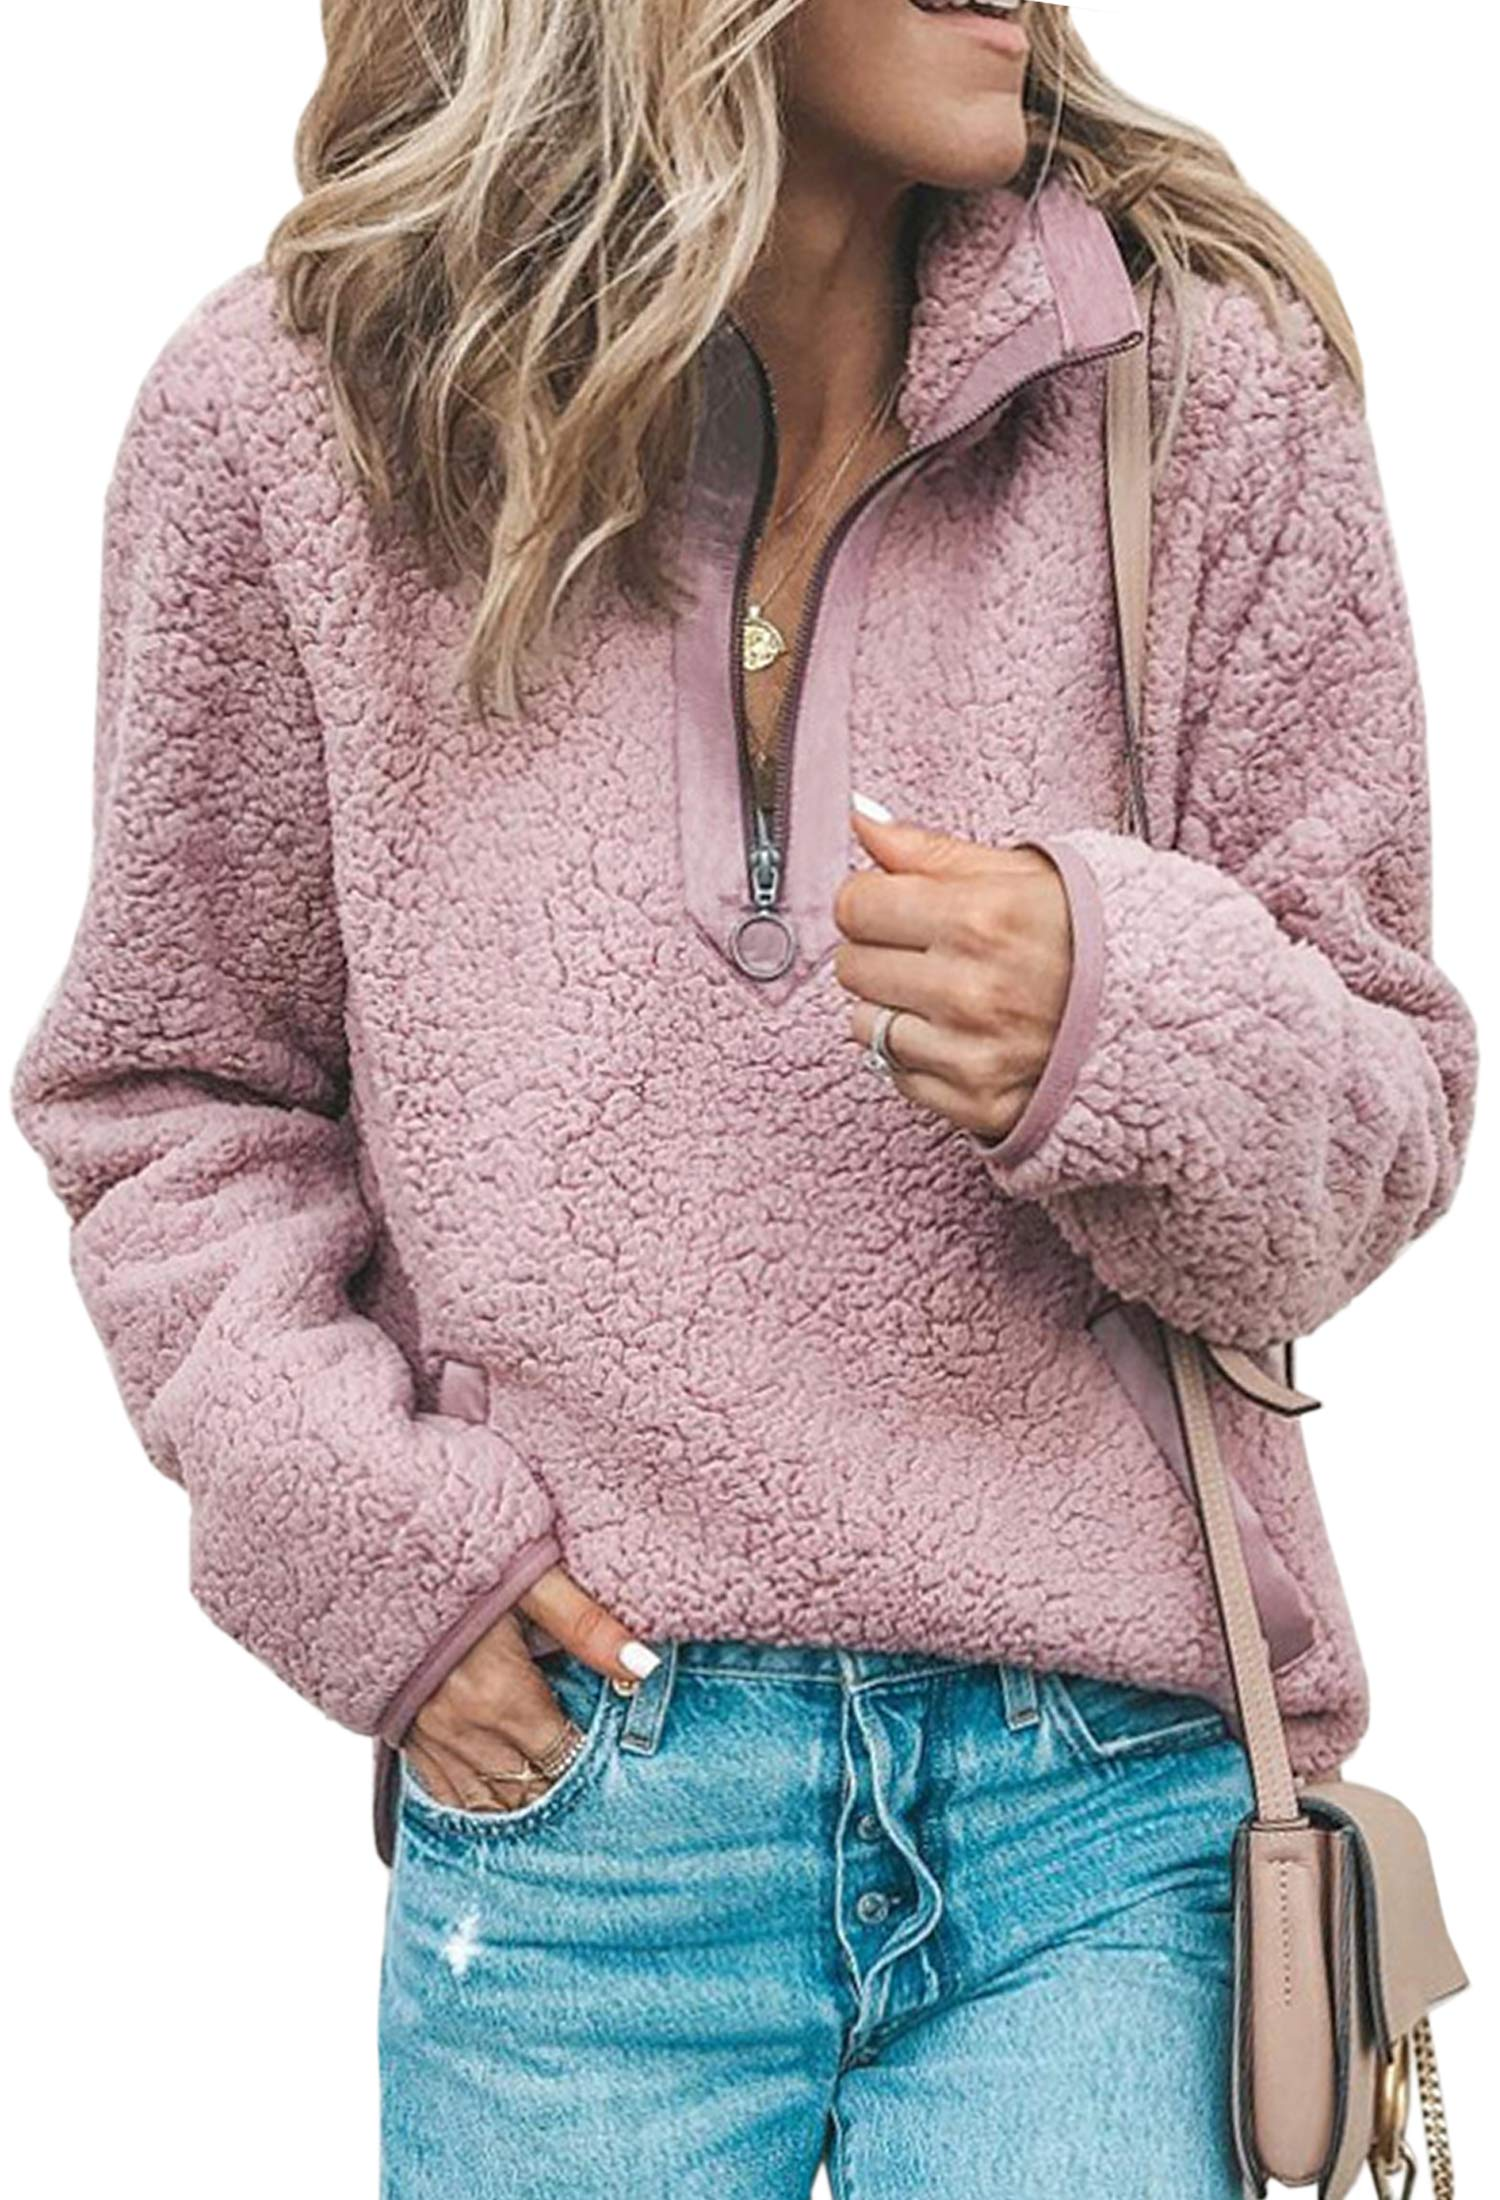 ECOWISH Women's Sweatshirt Stand Collar Half Zipper Fleece Pullover Sweatshirts Coat Winter Outwear with Pockets Pink Medium by ECOWISH